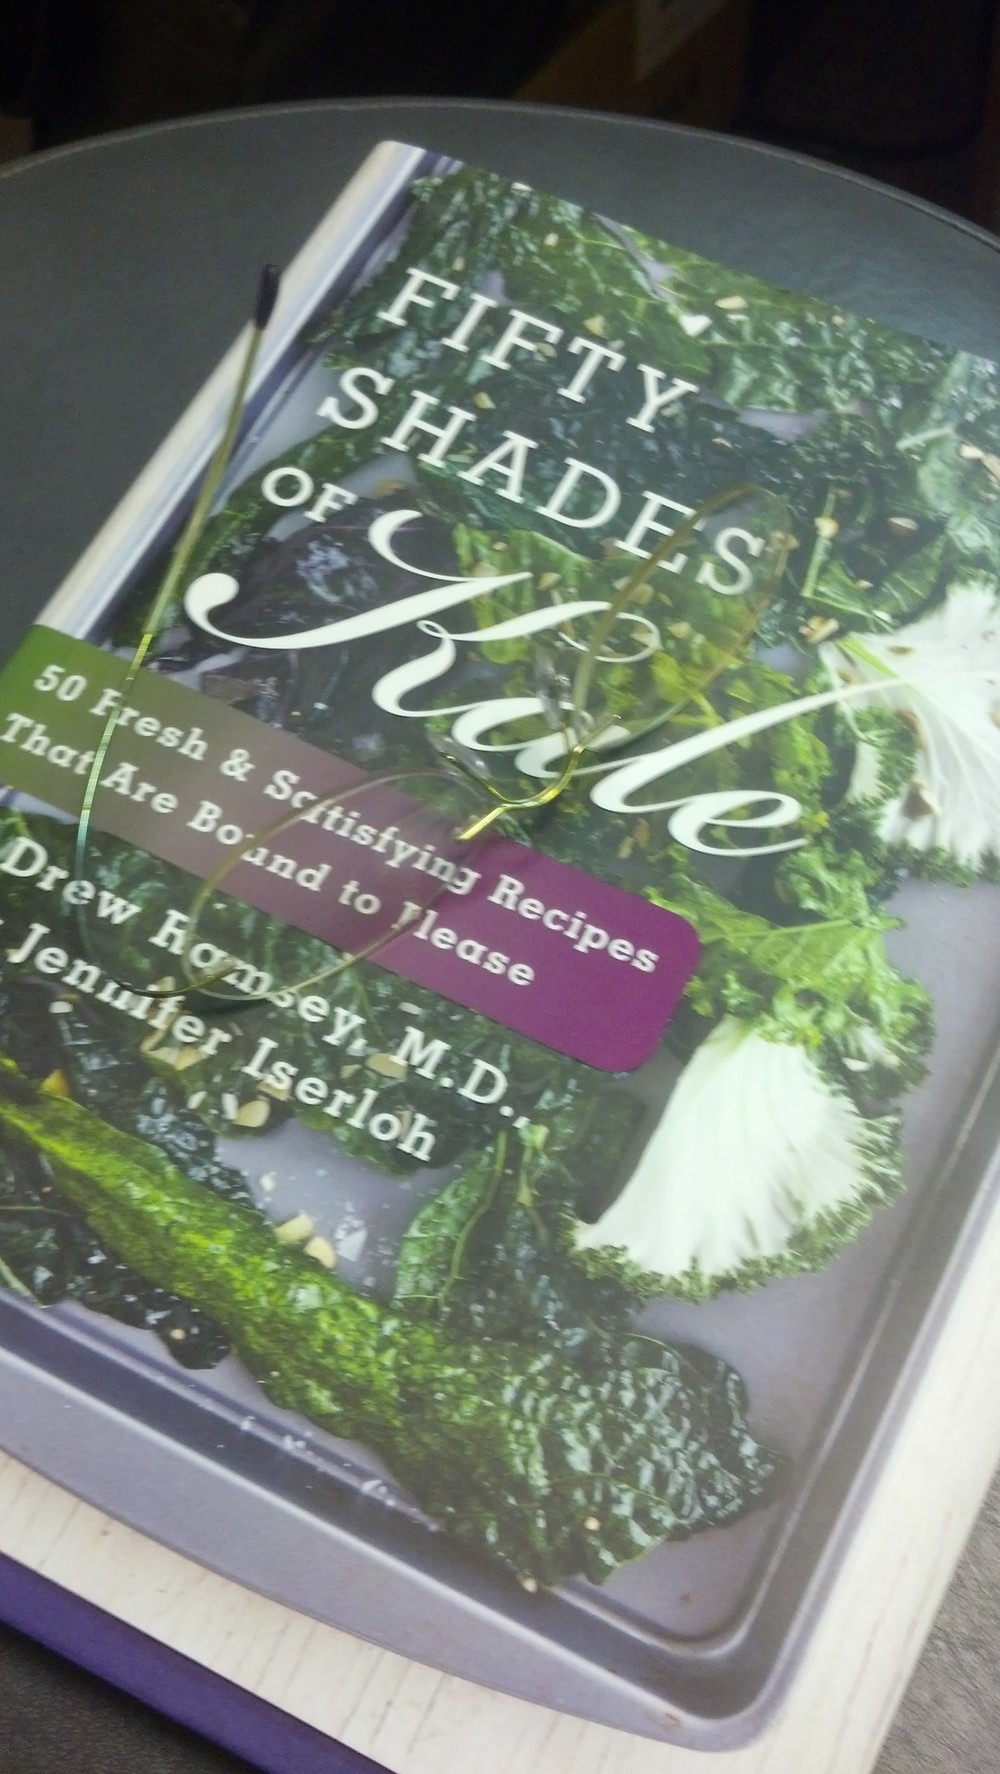 "One of my favorite parts of my job is connection with people. When each person reveals a little bit about their story or experiences i feel like they are giving me a little gift. Recently i had a connection where we shared a mutual interest in kale. Perfect chance to show off my latest cookbook acquisition, ""Fifty Shades of Kale"" by Drew Ramsey, MD and Jennifer Iserloh. After i dispensed her new lenses she selected a few recipes and we had our kale connection. Days like these help me get through other days.    SELECT   to learn more about Sandy Brubaker (Wisconsin).   VIEW   Sandy's entire blog."